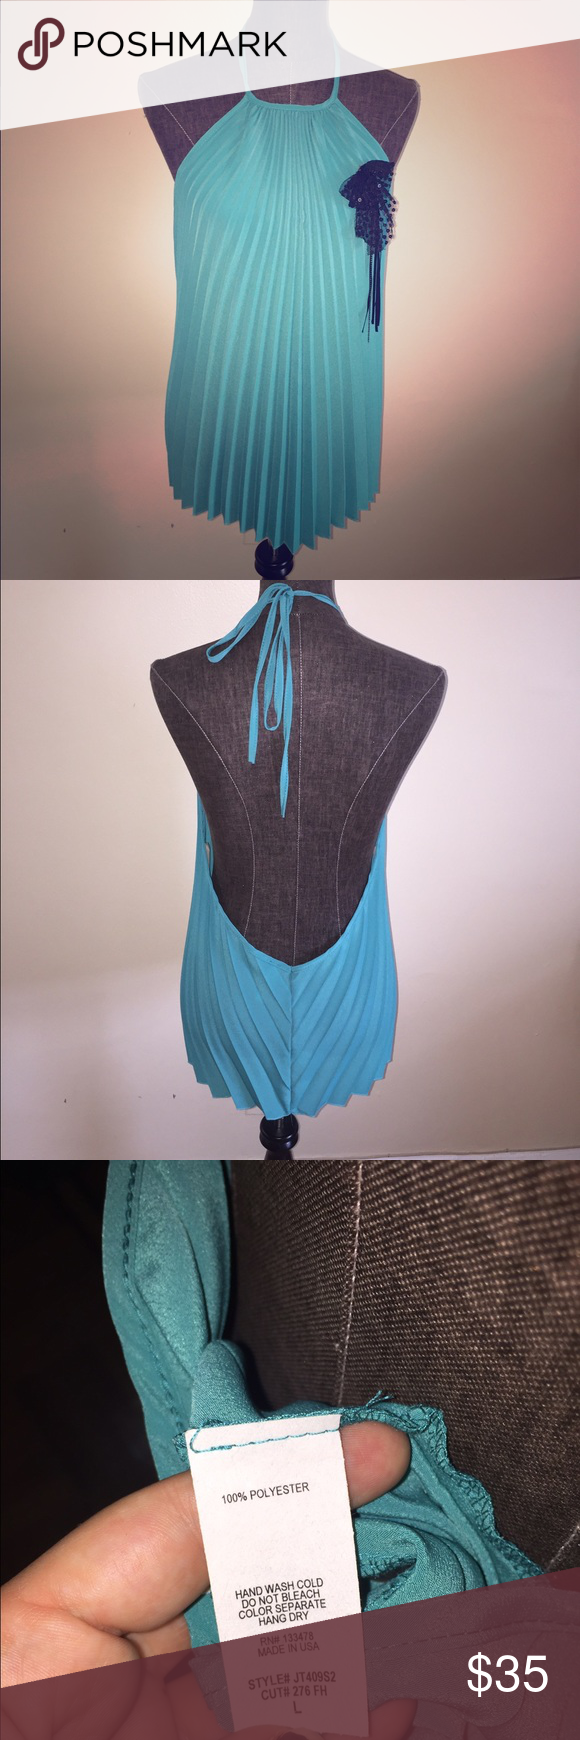 ✨Newly Reduced✨Gorgeous turquoise top!!Never worn! Hot open back top. Size large. Great with skinny jeans or shorts. Tops